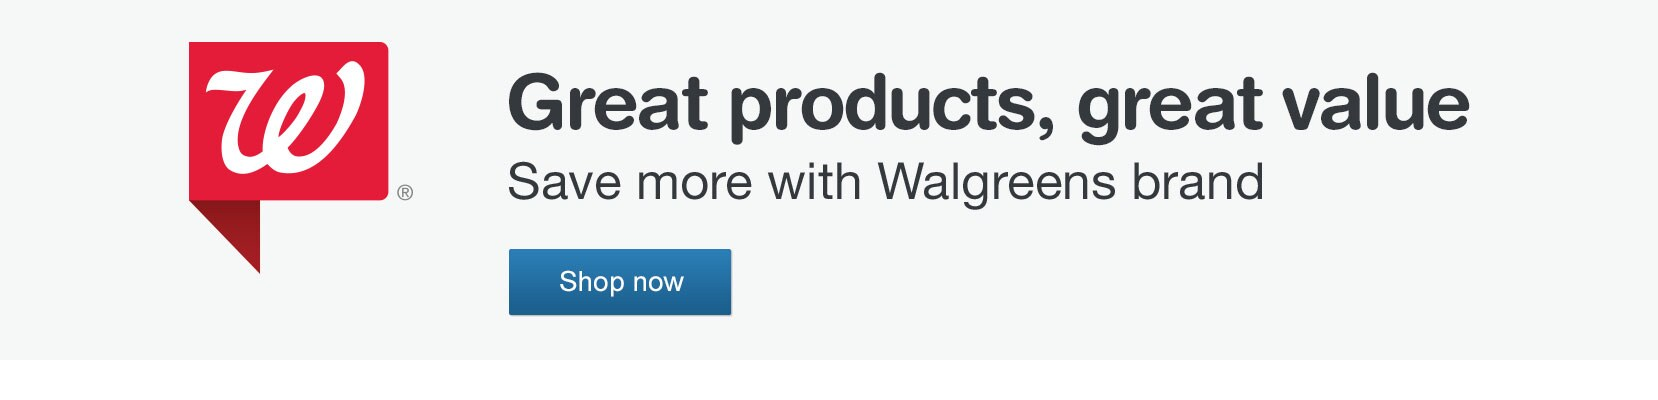 Great Products Value Save More With Walgreens Brand Shop Now